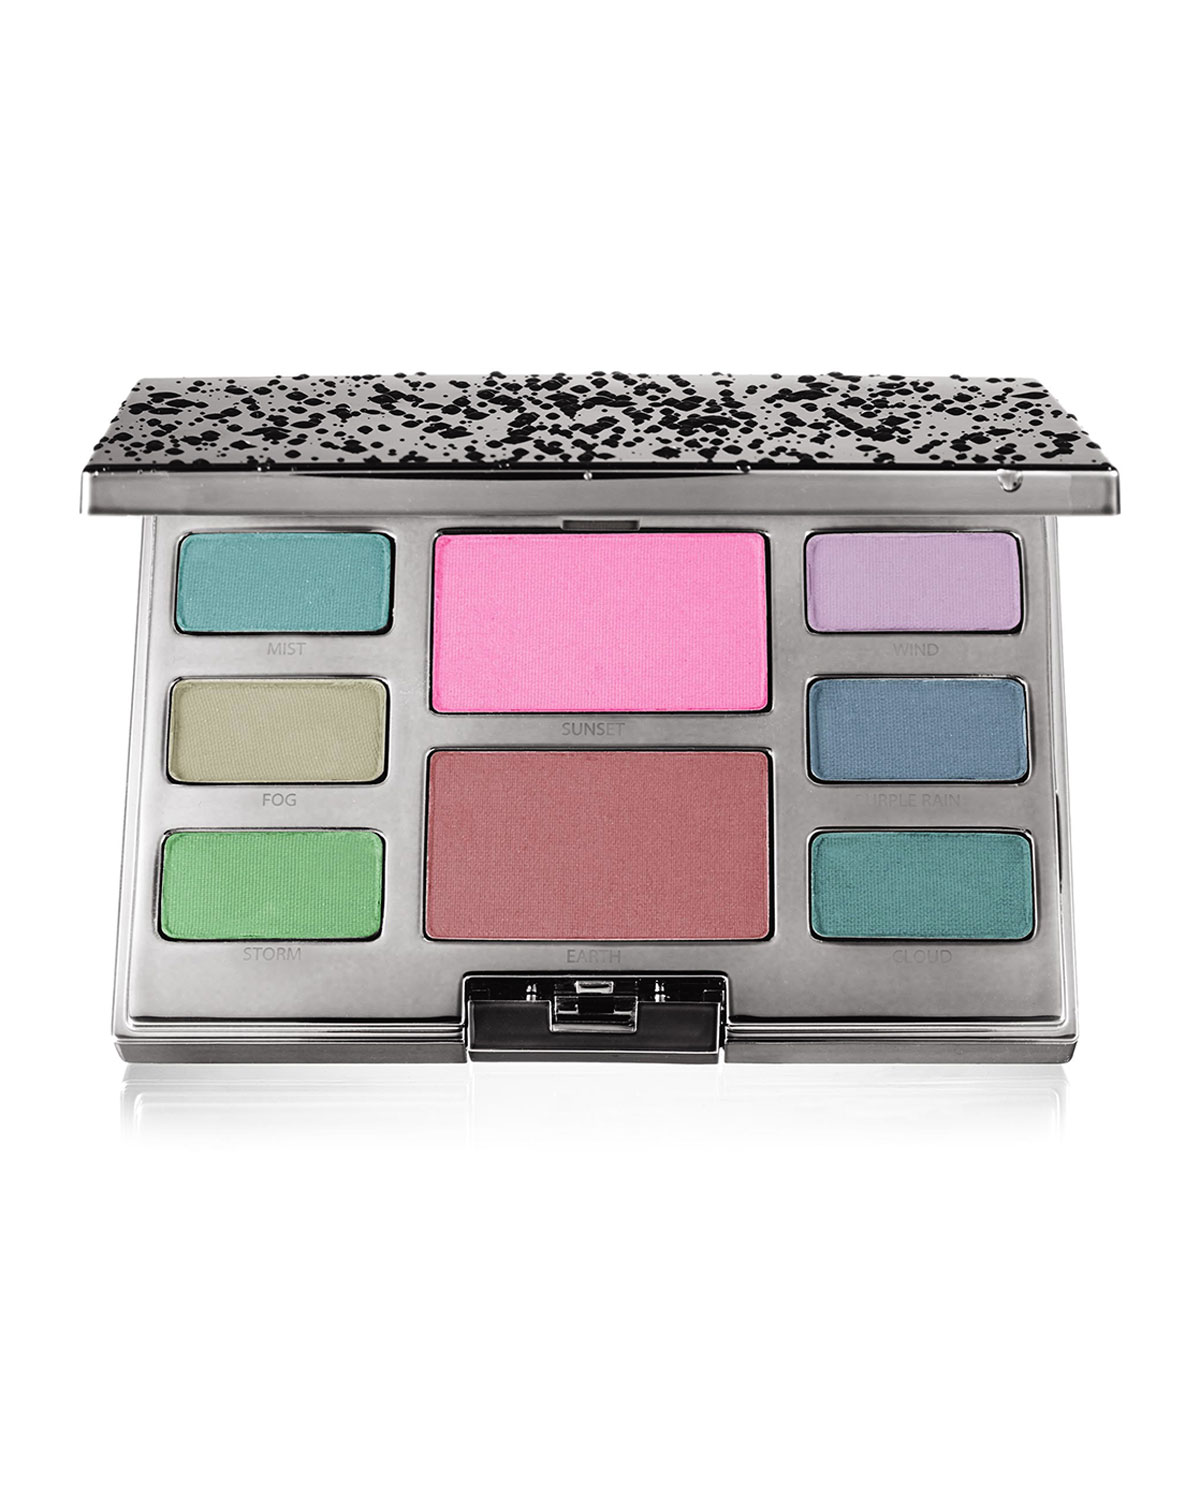 LIMITED ION Watercolour Mist Eye & Cheek Palette